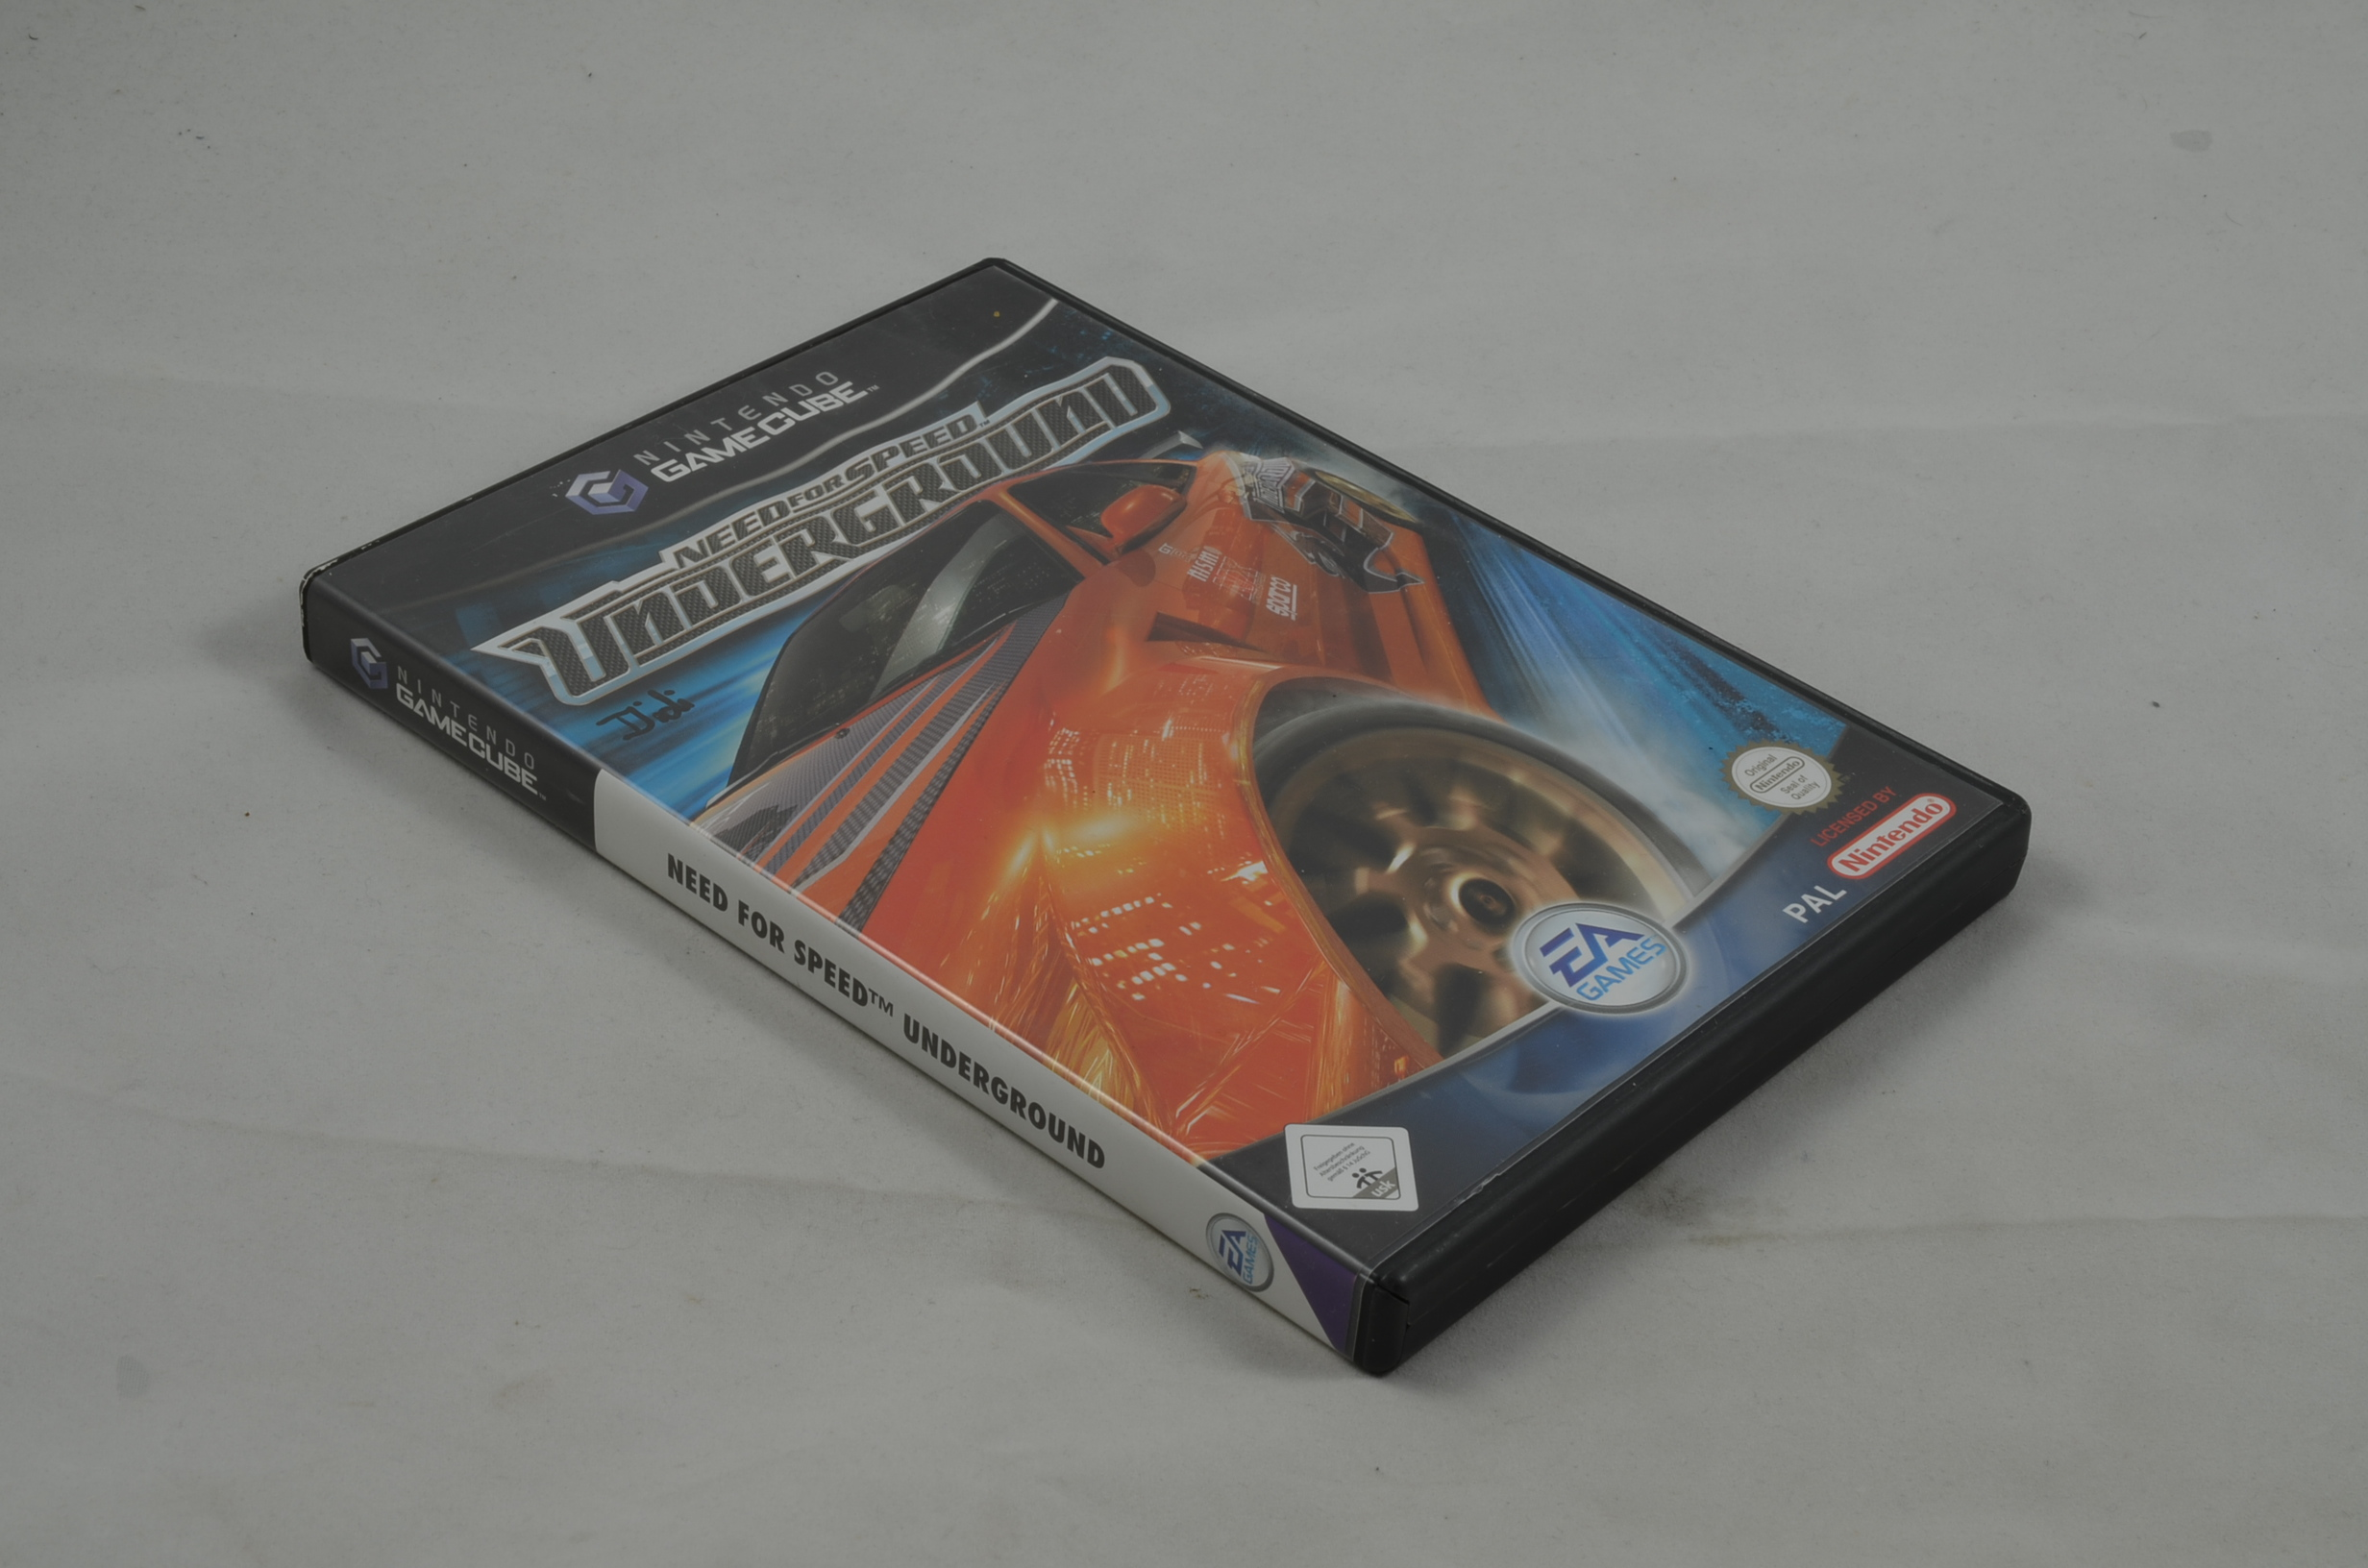 Produktbild von Need for Speed Underground GameCube Spiel CIB (gut)